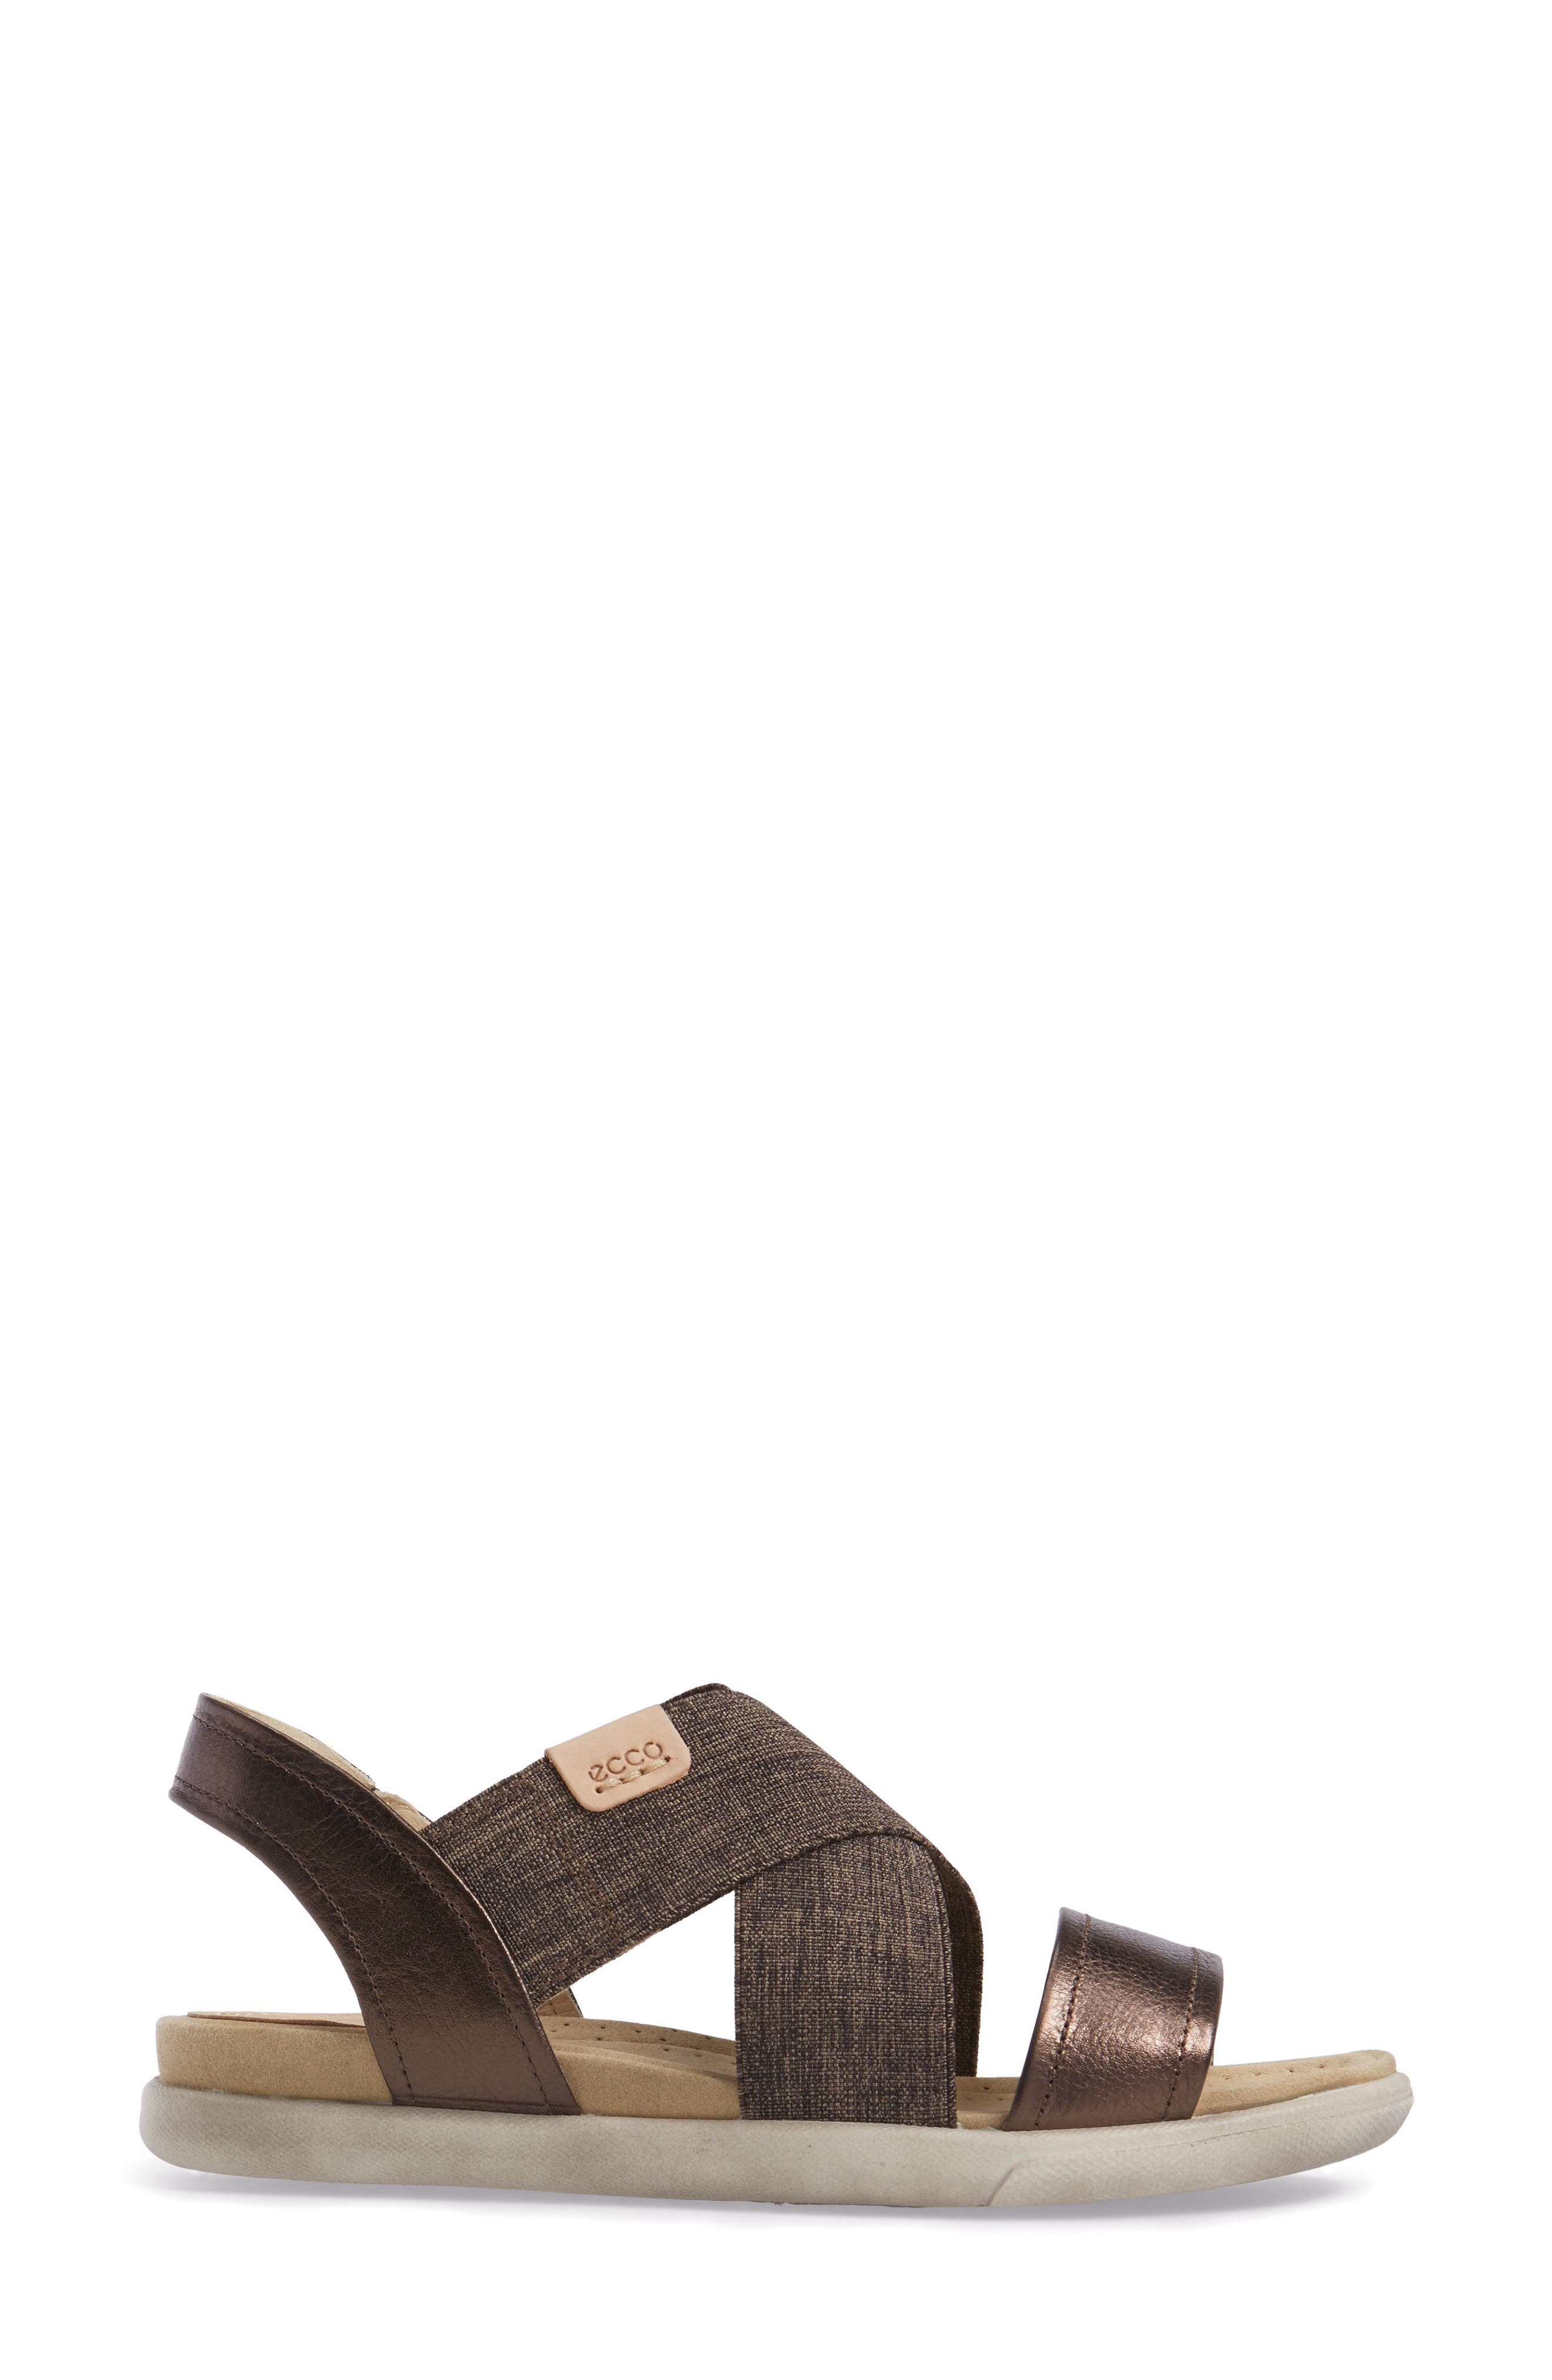 Damara Cross-Strap Sandal,                             Alternate thumbnail 20, color,